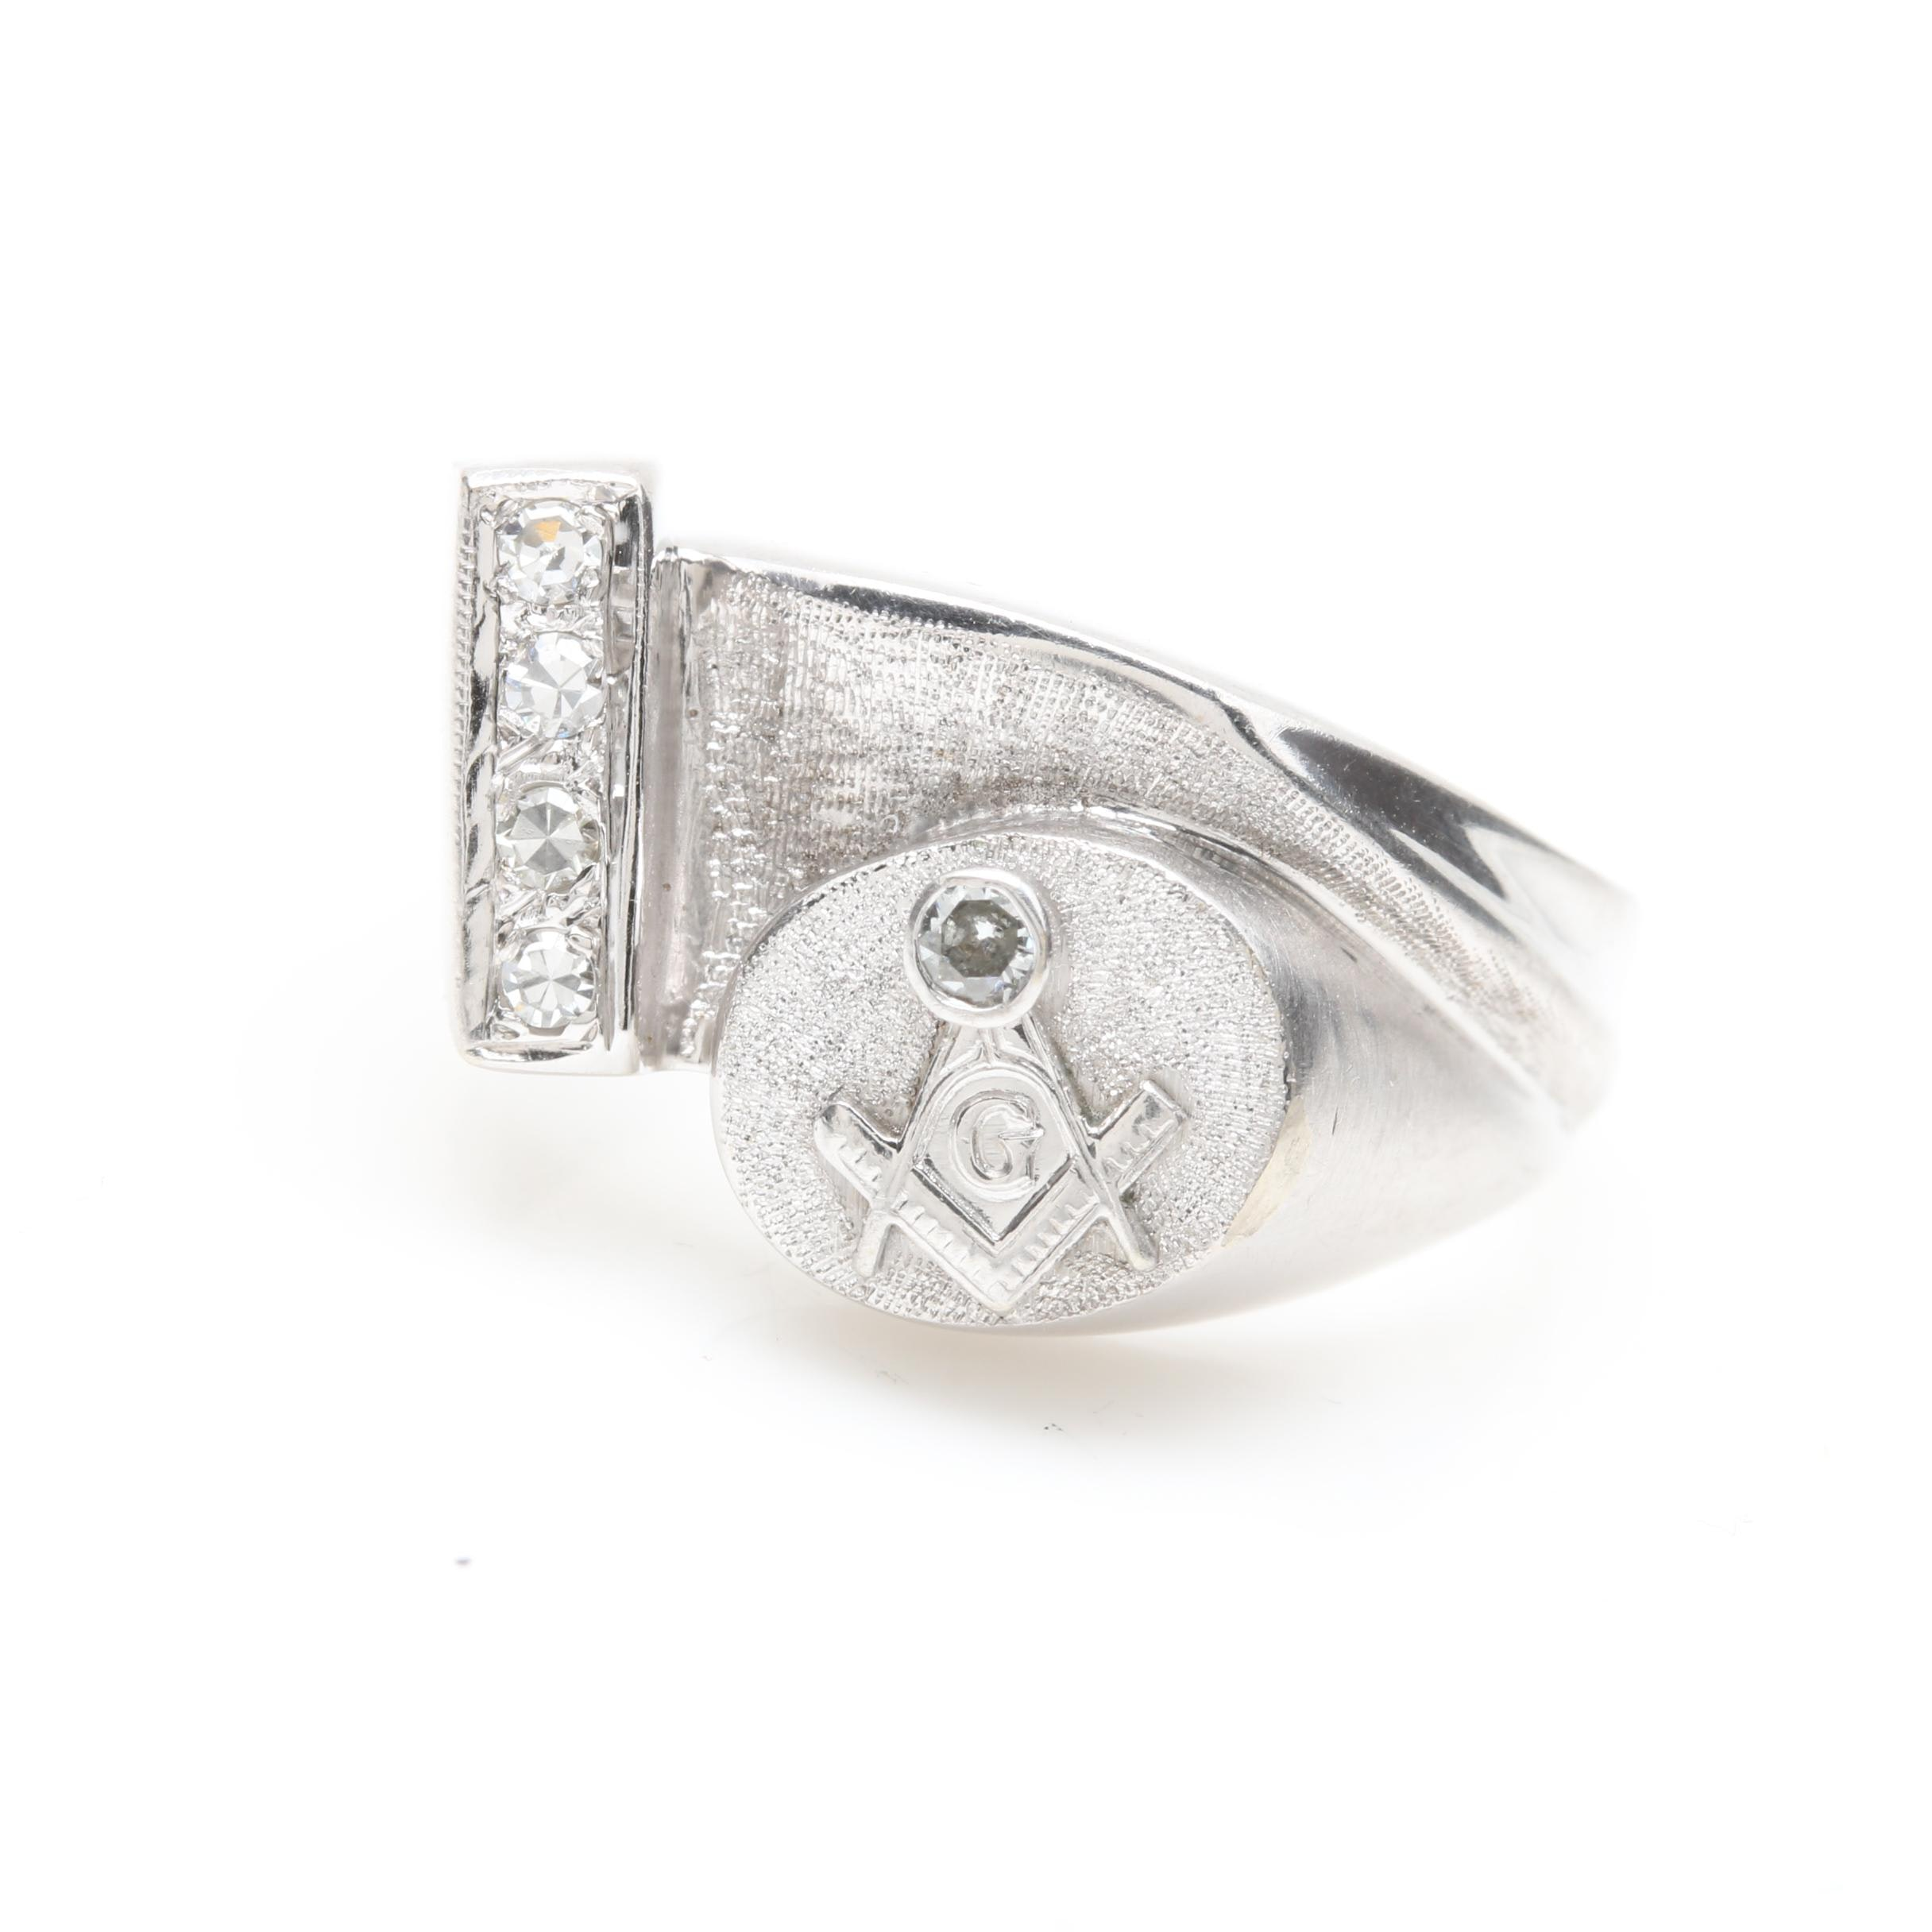 14K White Gold Diamond Masonic Ring